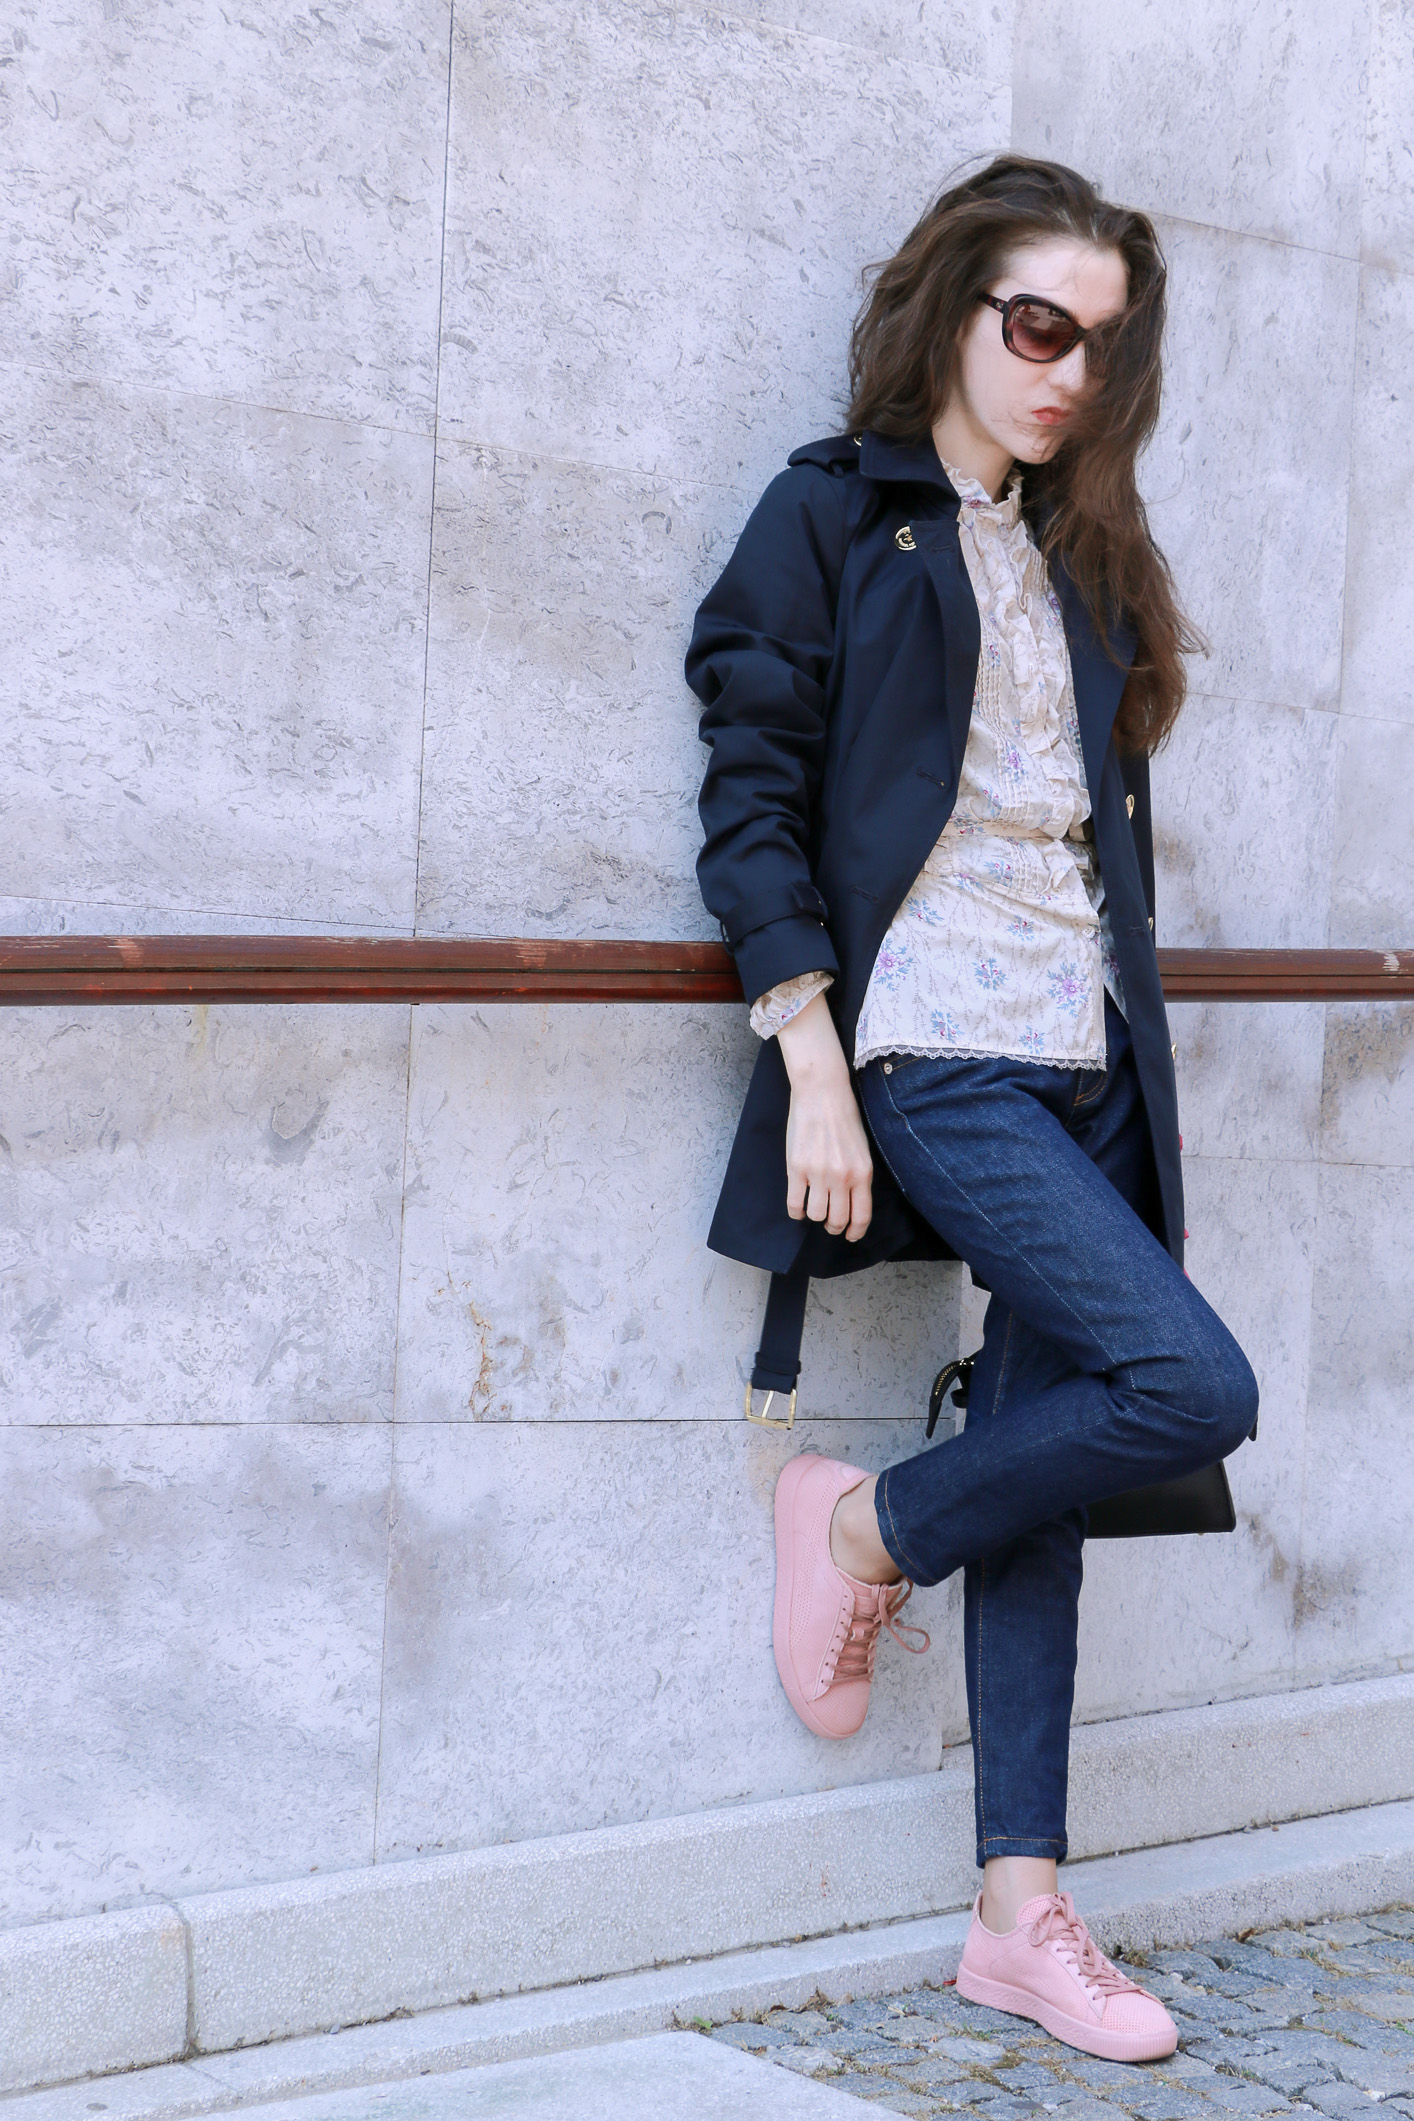 Fashion blogger Veronika Lipar of Brunette From Wall Street sharing her spring chic business outfit in pale pink sneakers and dark blue jeans and blue trench coat